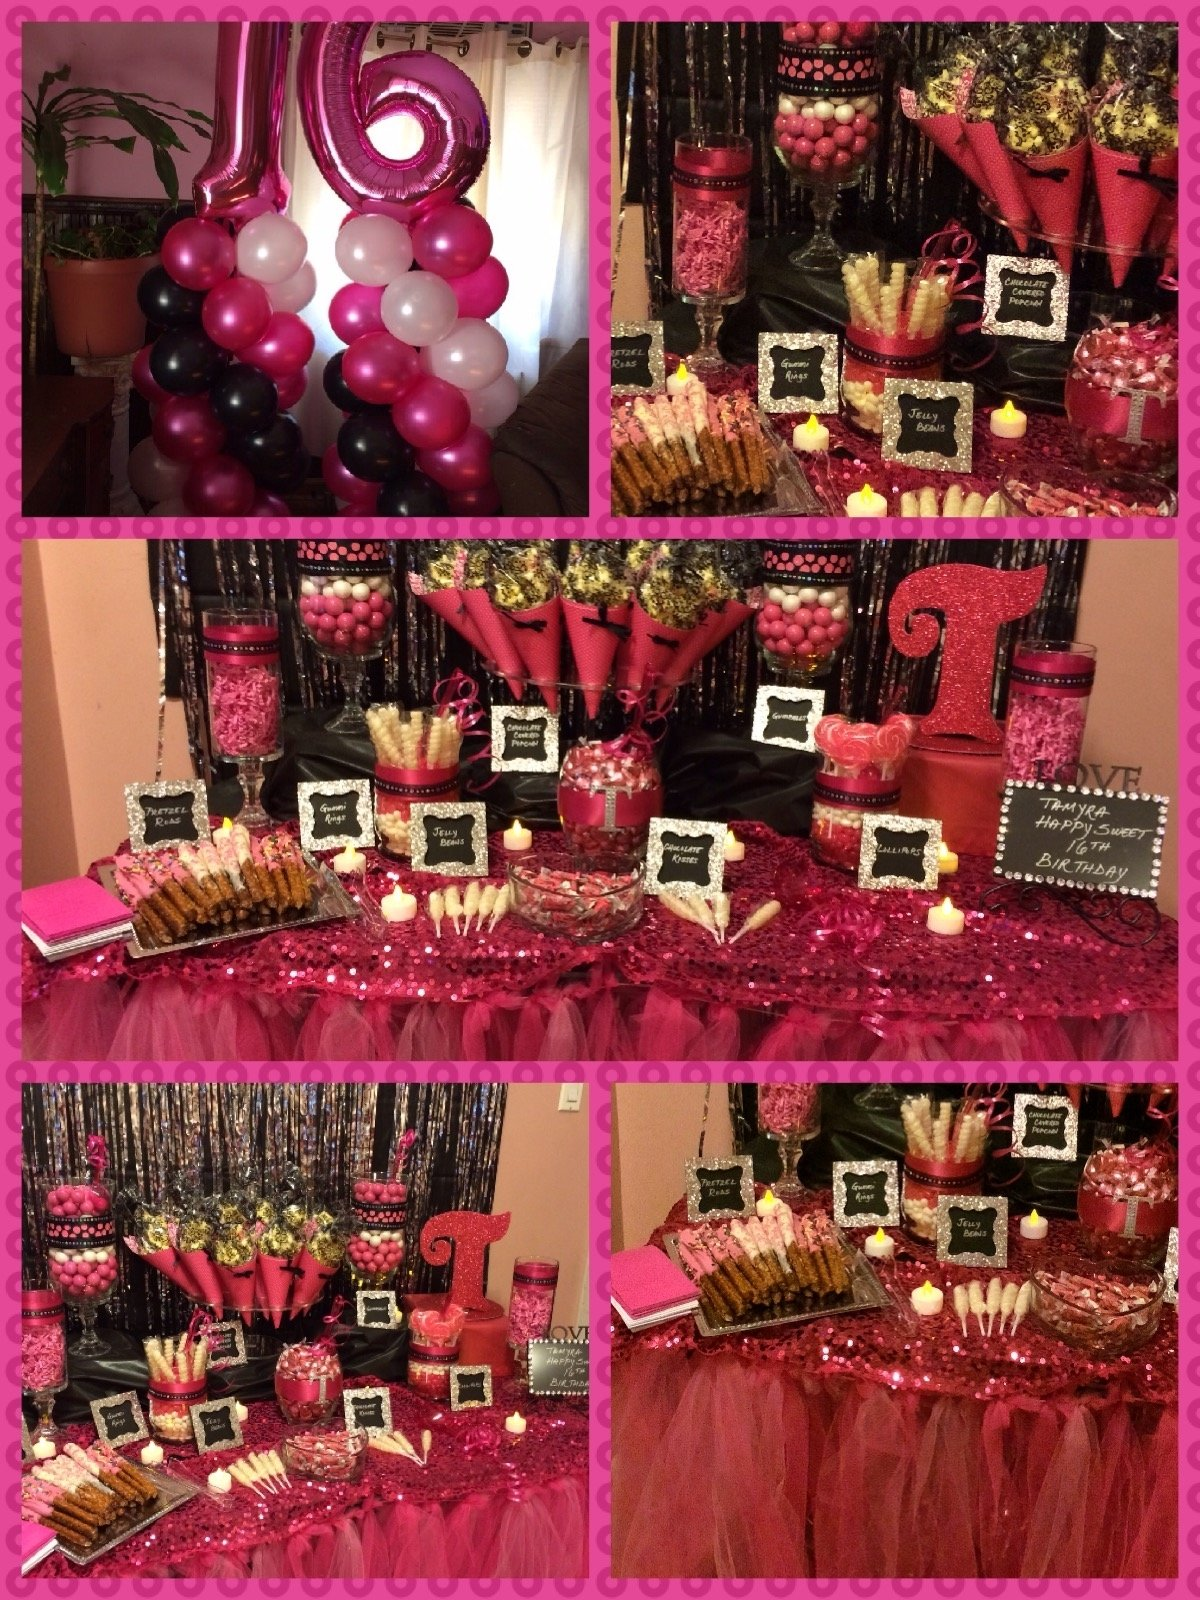 10 Famous Pink And Black Party Ideas interior design new paris themed party decor room design ideas black 2020